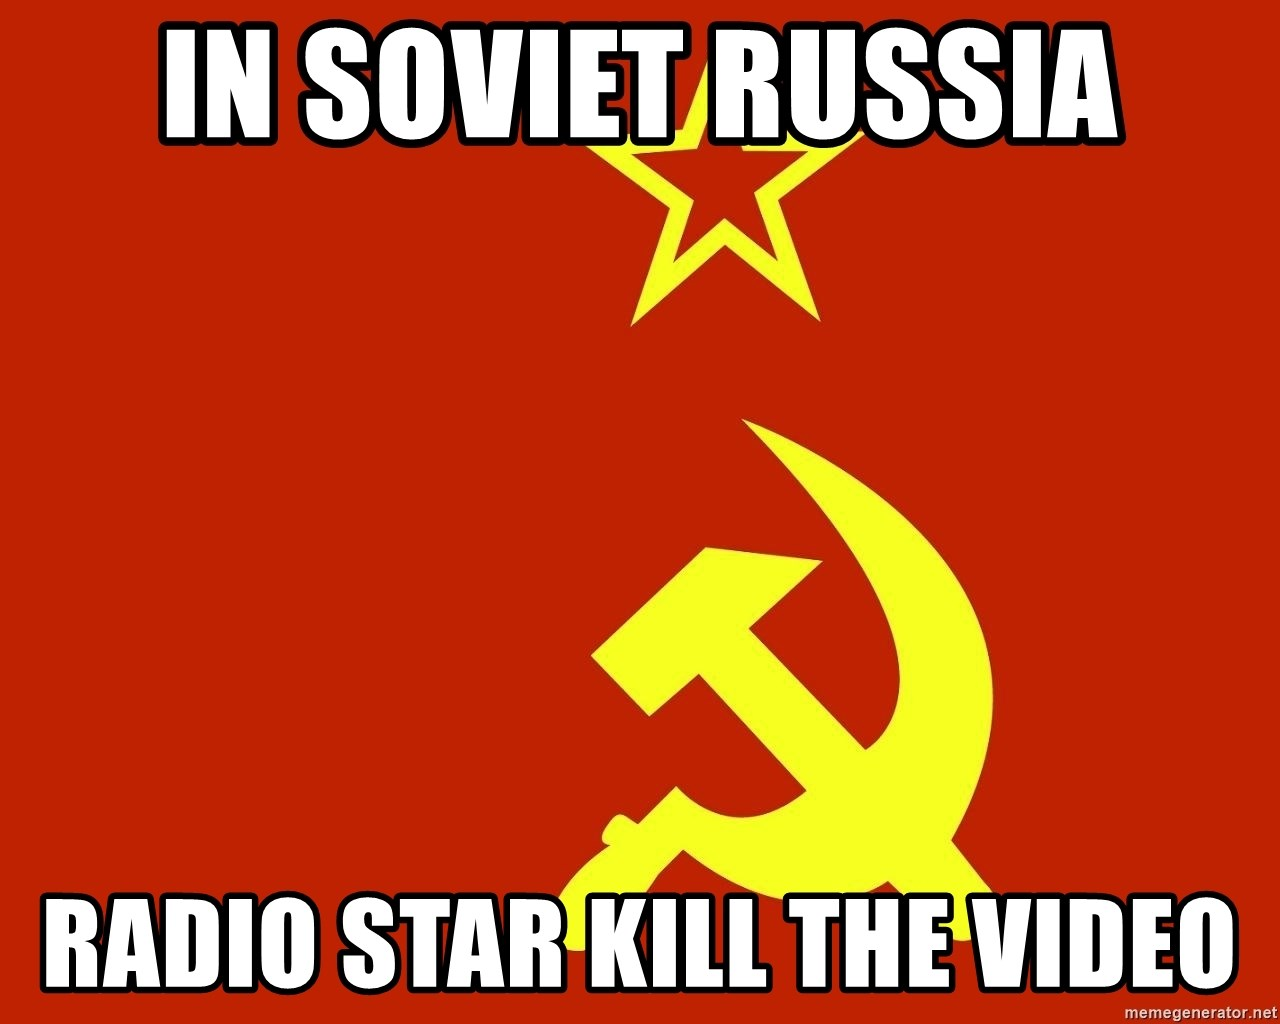 In Soviet Russia - in soviet russia radio star kill the video